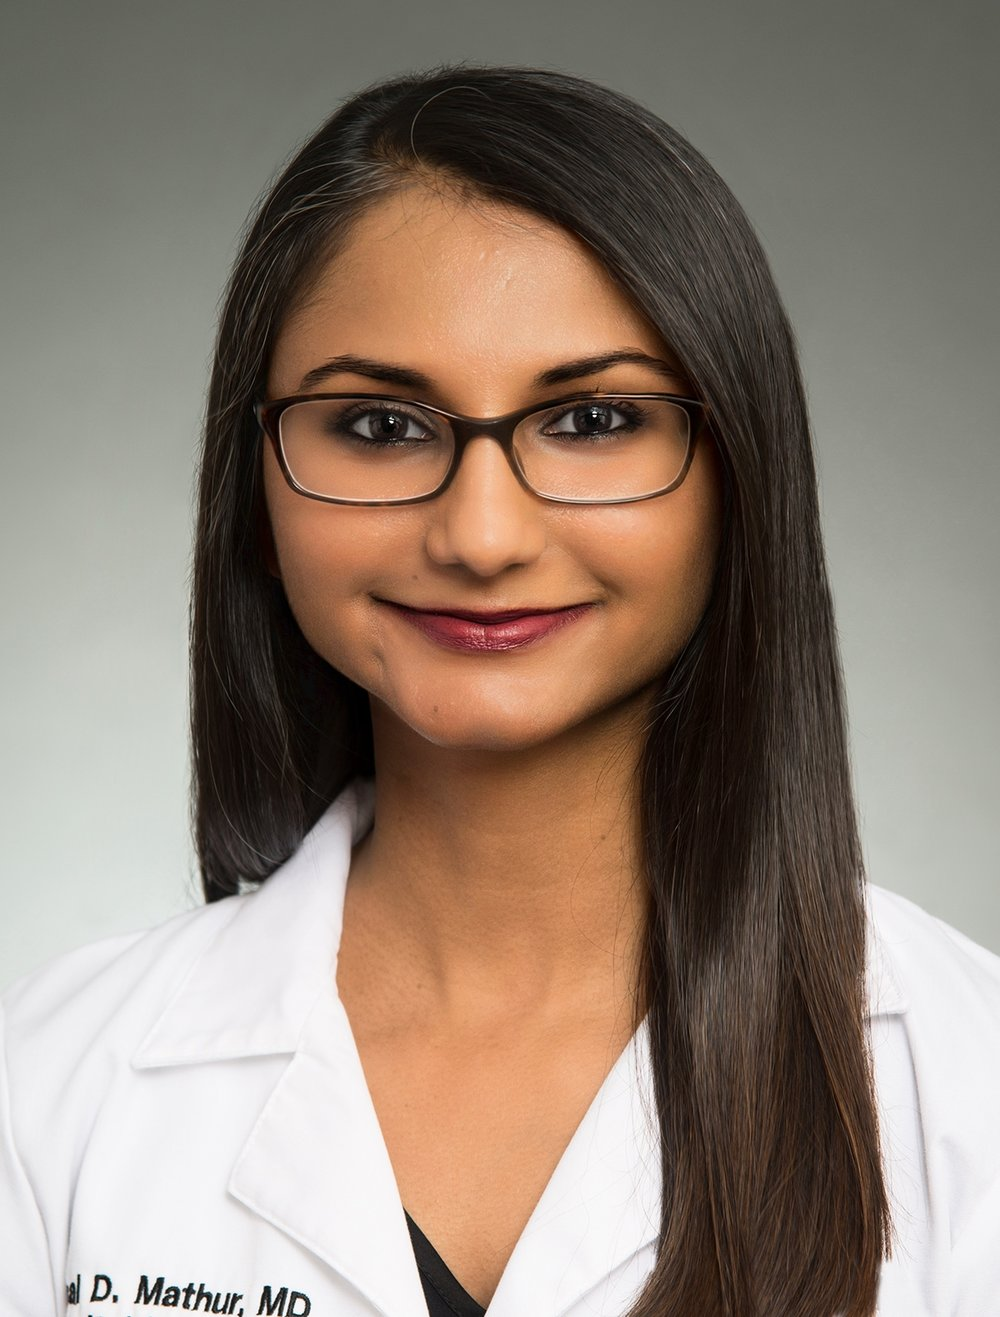 Rupal Mathur, MD WC 1.jpg